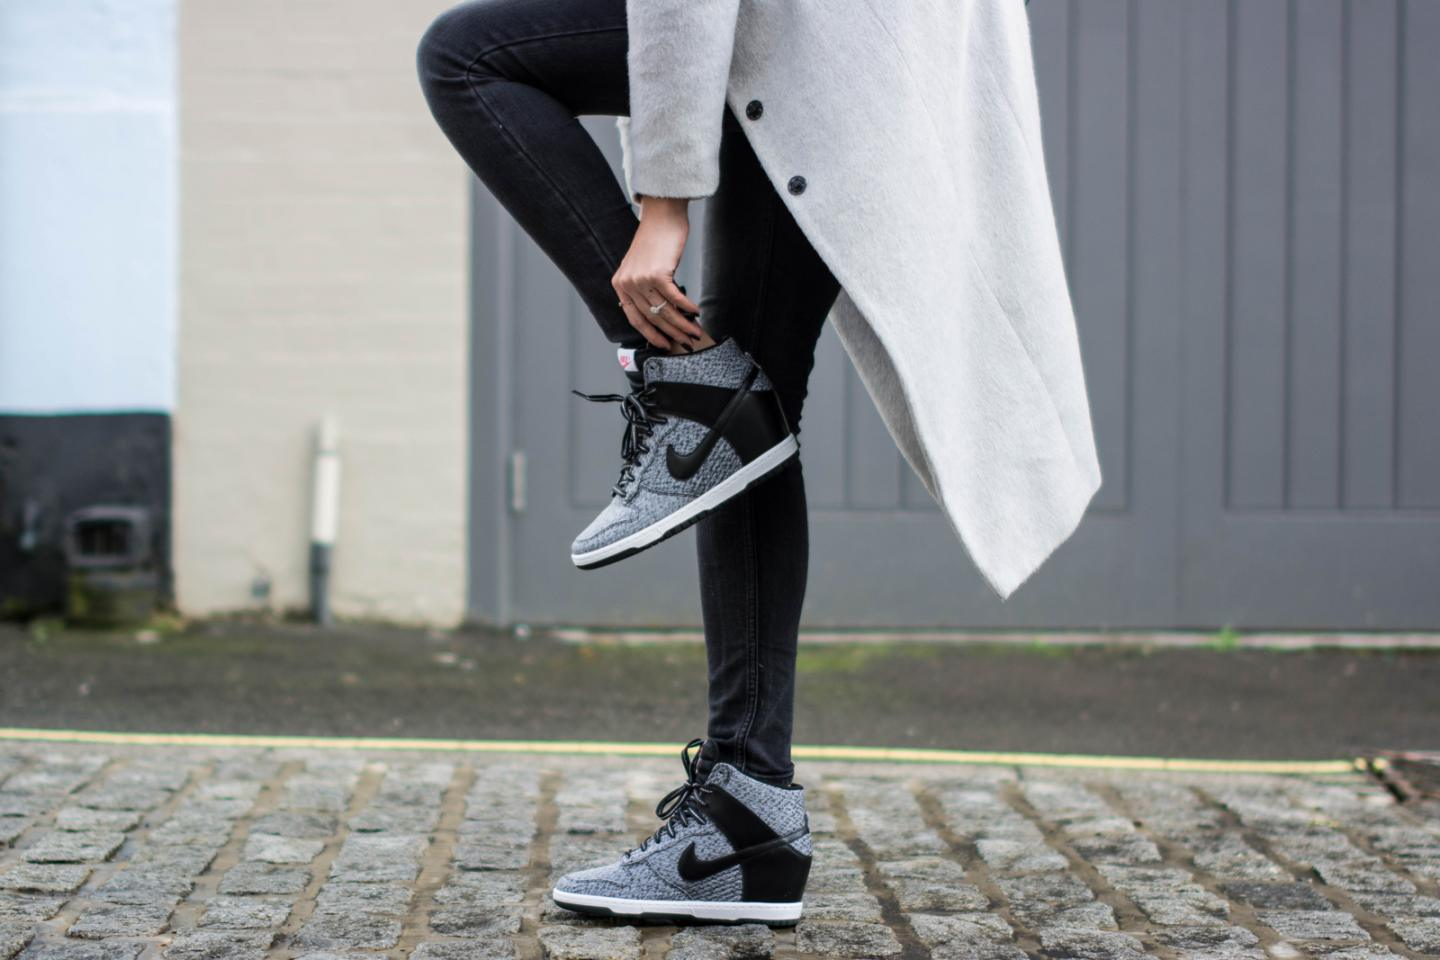 EJSTYLE - Dorothy Perkins Long grey coat, wedge nike sneakers trainers, Acid wash black jeans asos, Winter OOTD, london street style